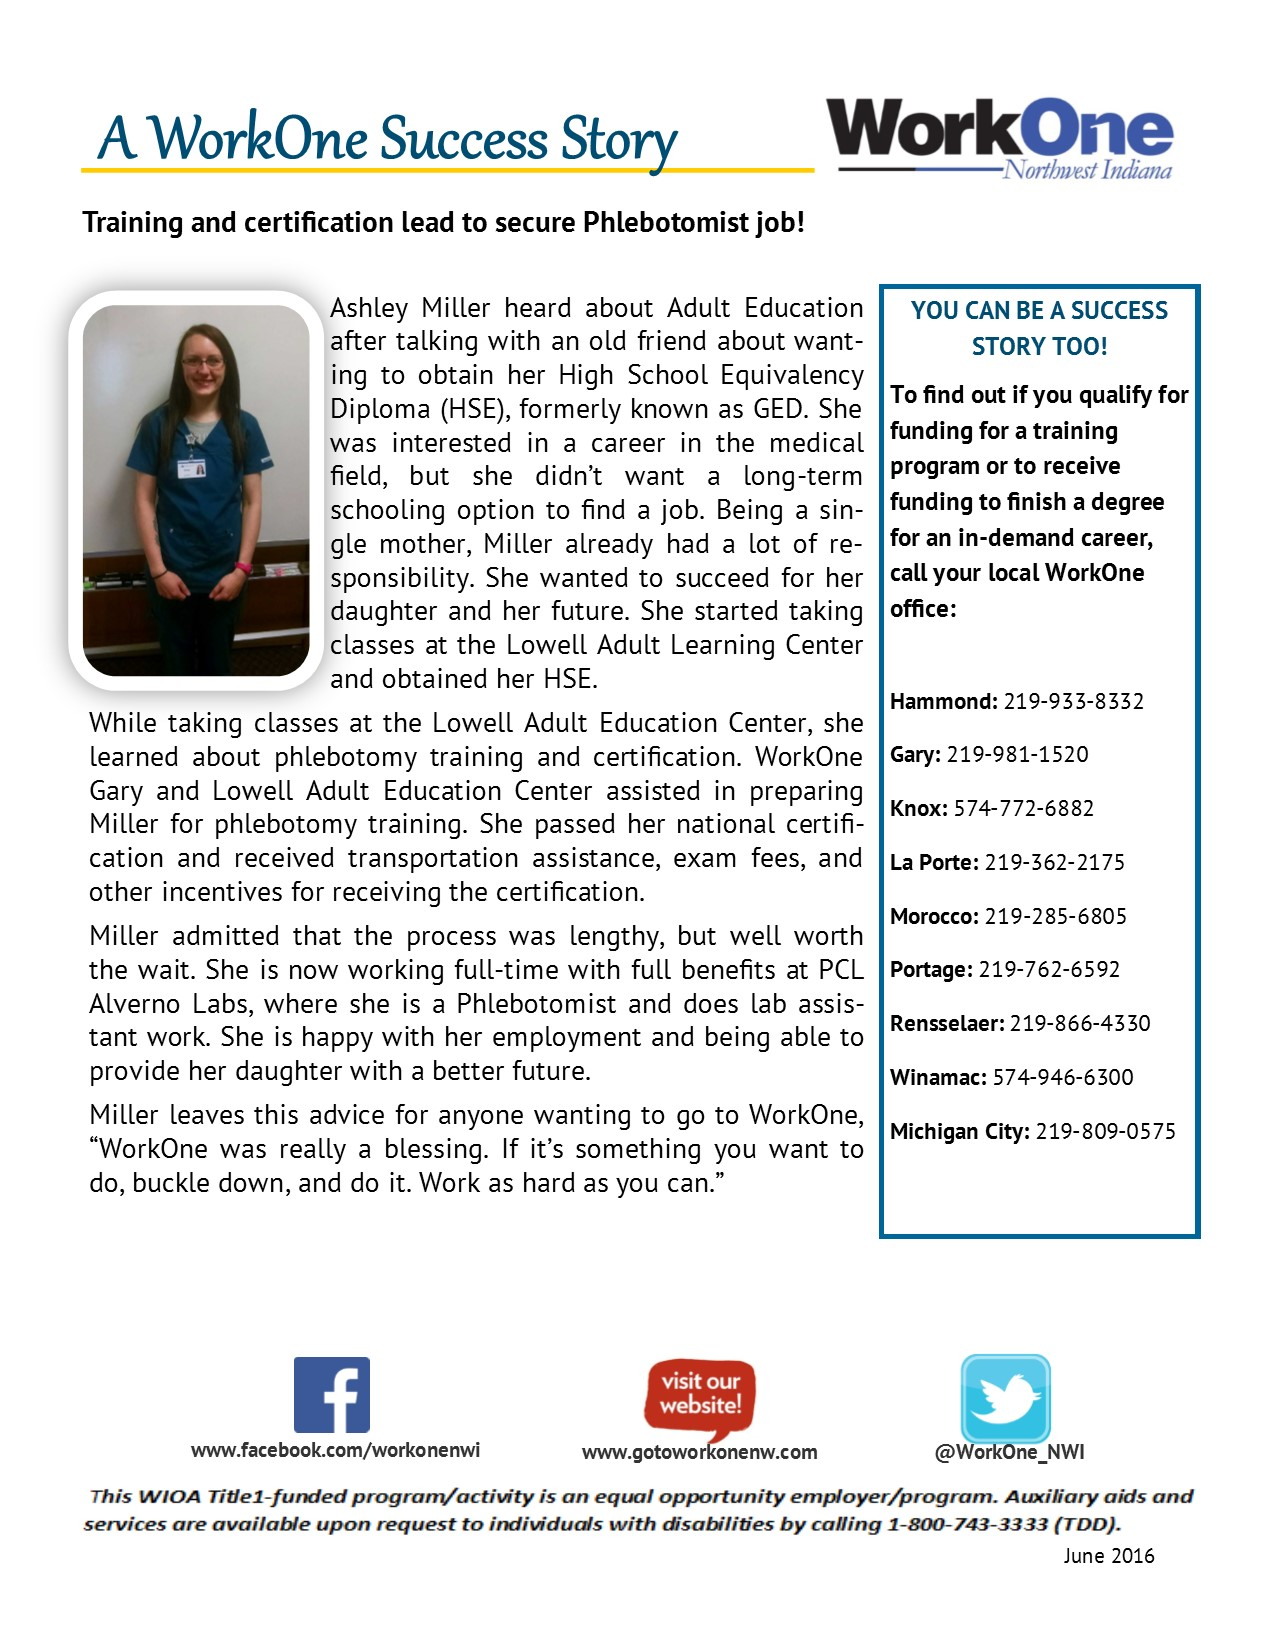 workone training and certification lead to phlebotomist job ashley miller